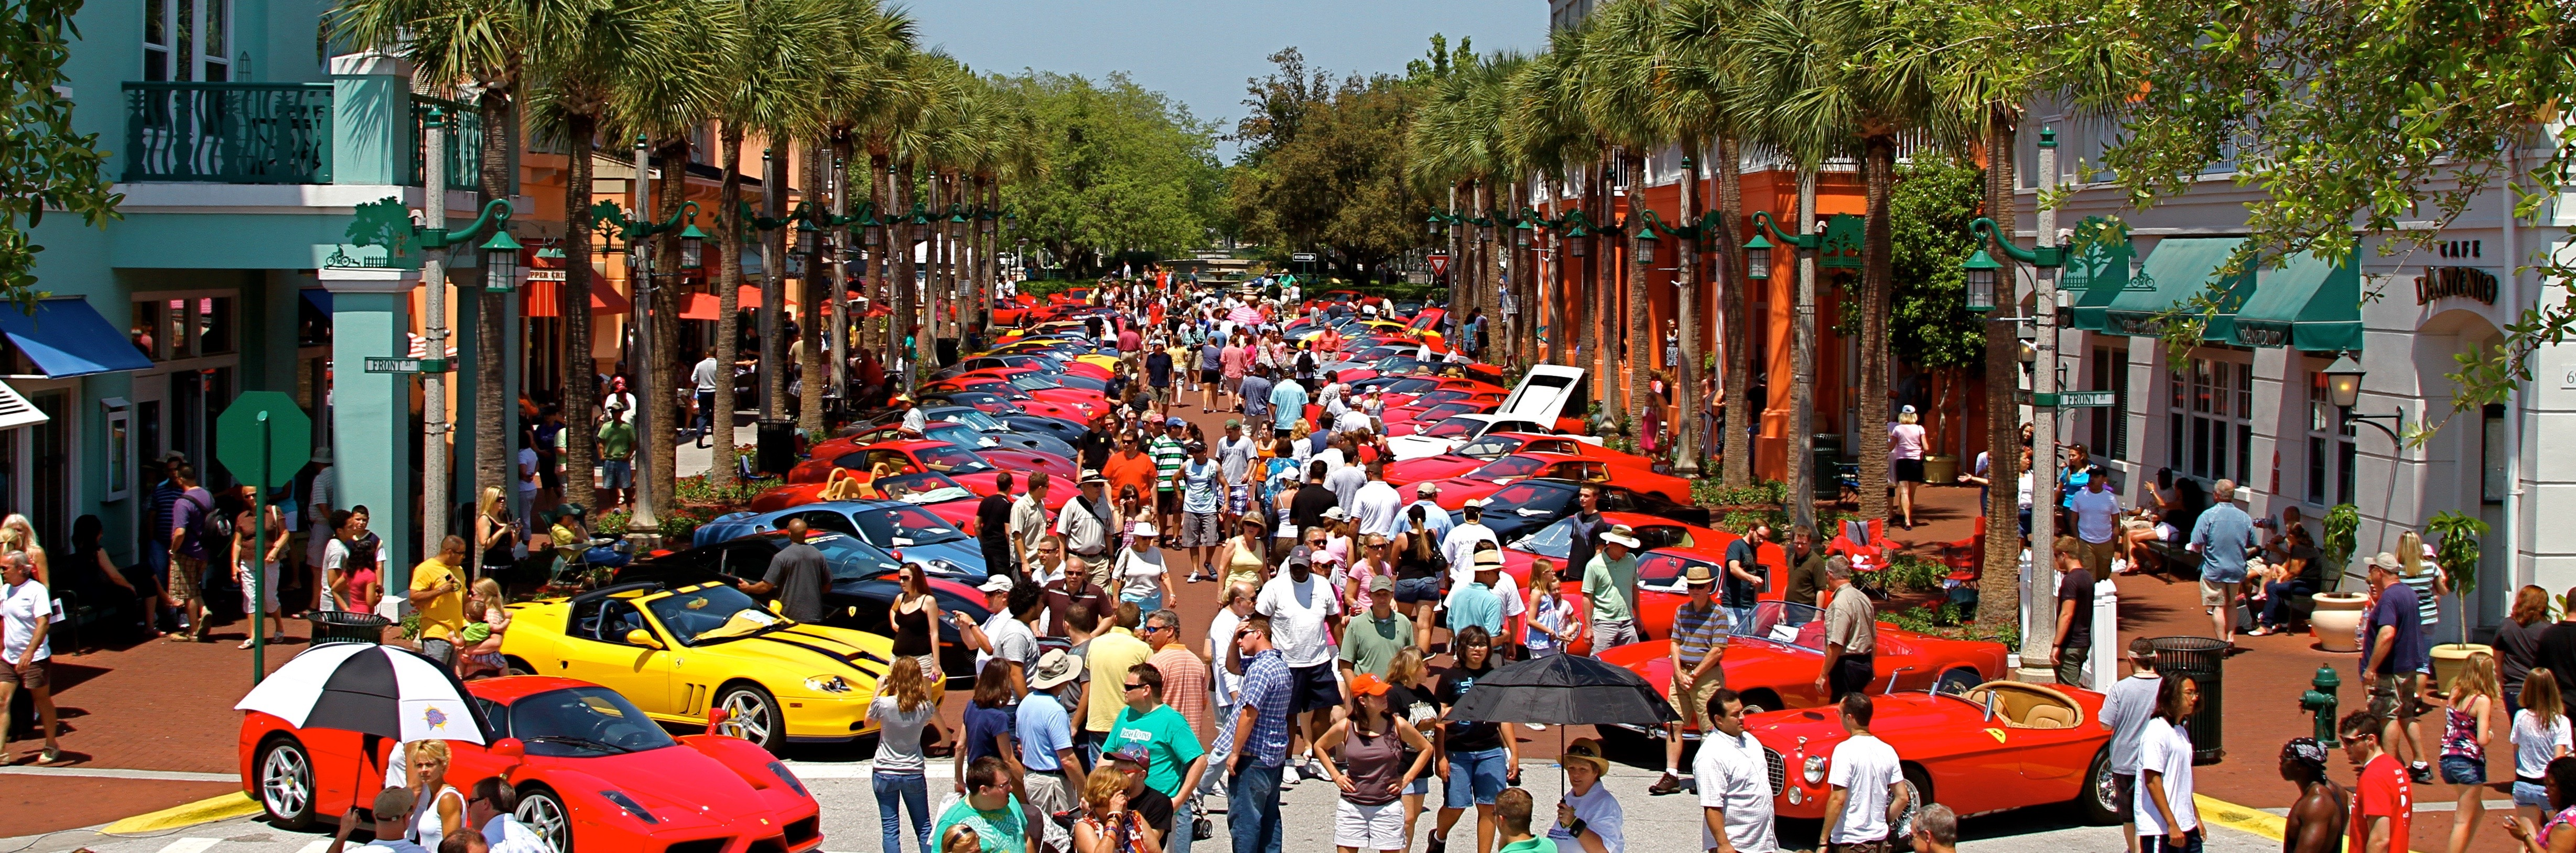 Celebration Exotic Car Festival April Celebration Exotic - Exotic car show florida 2018